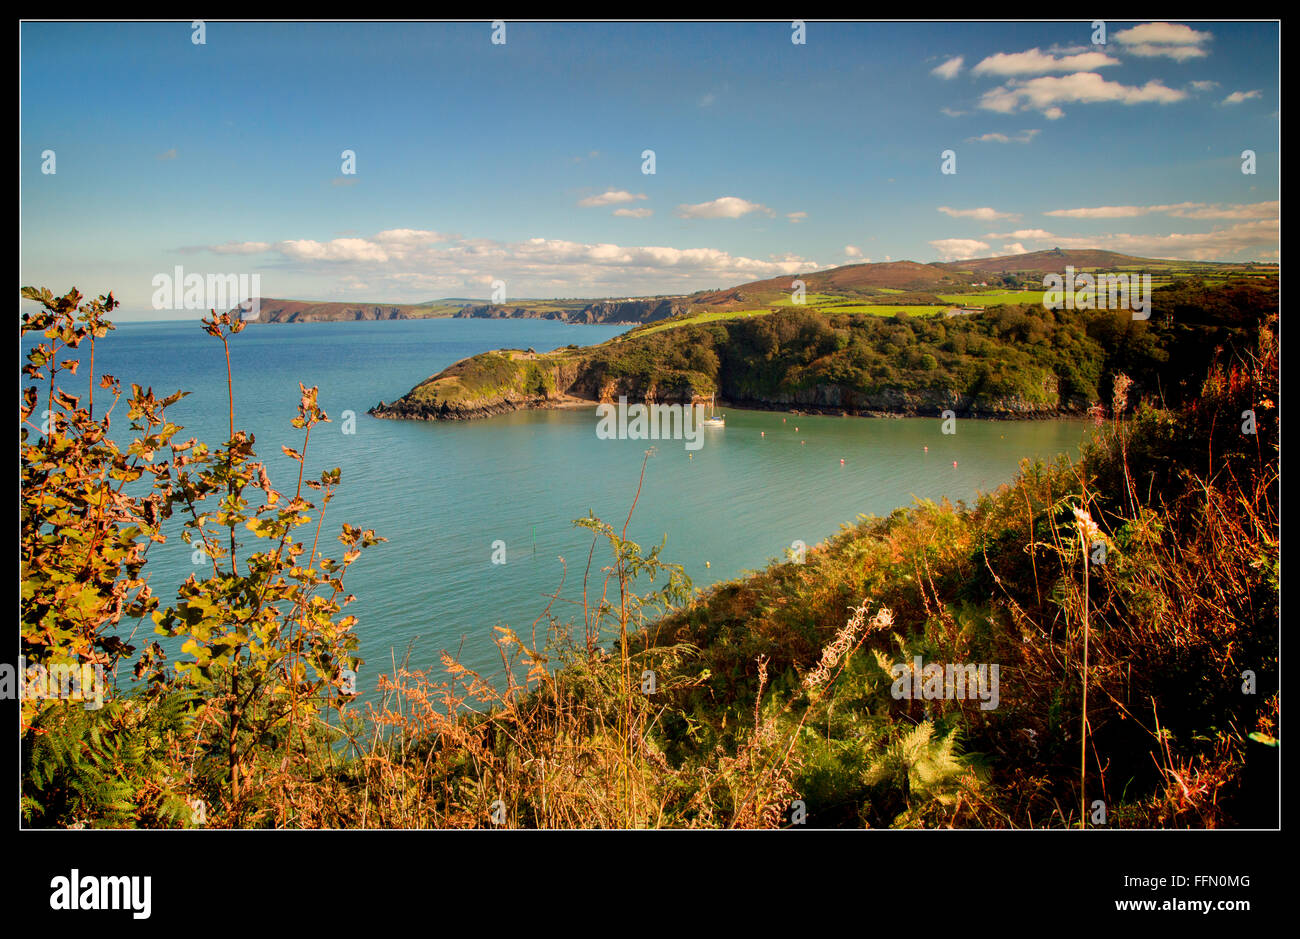 Entrance to Fishguard Harbour, Pembrokeshire - Stock Image